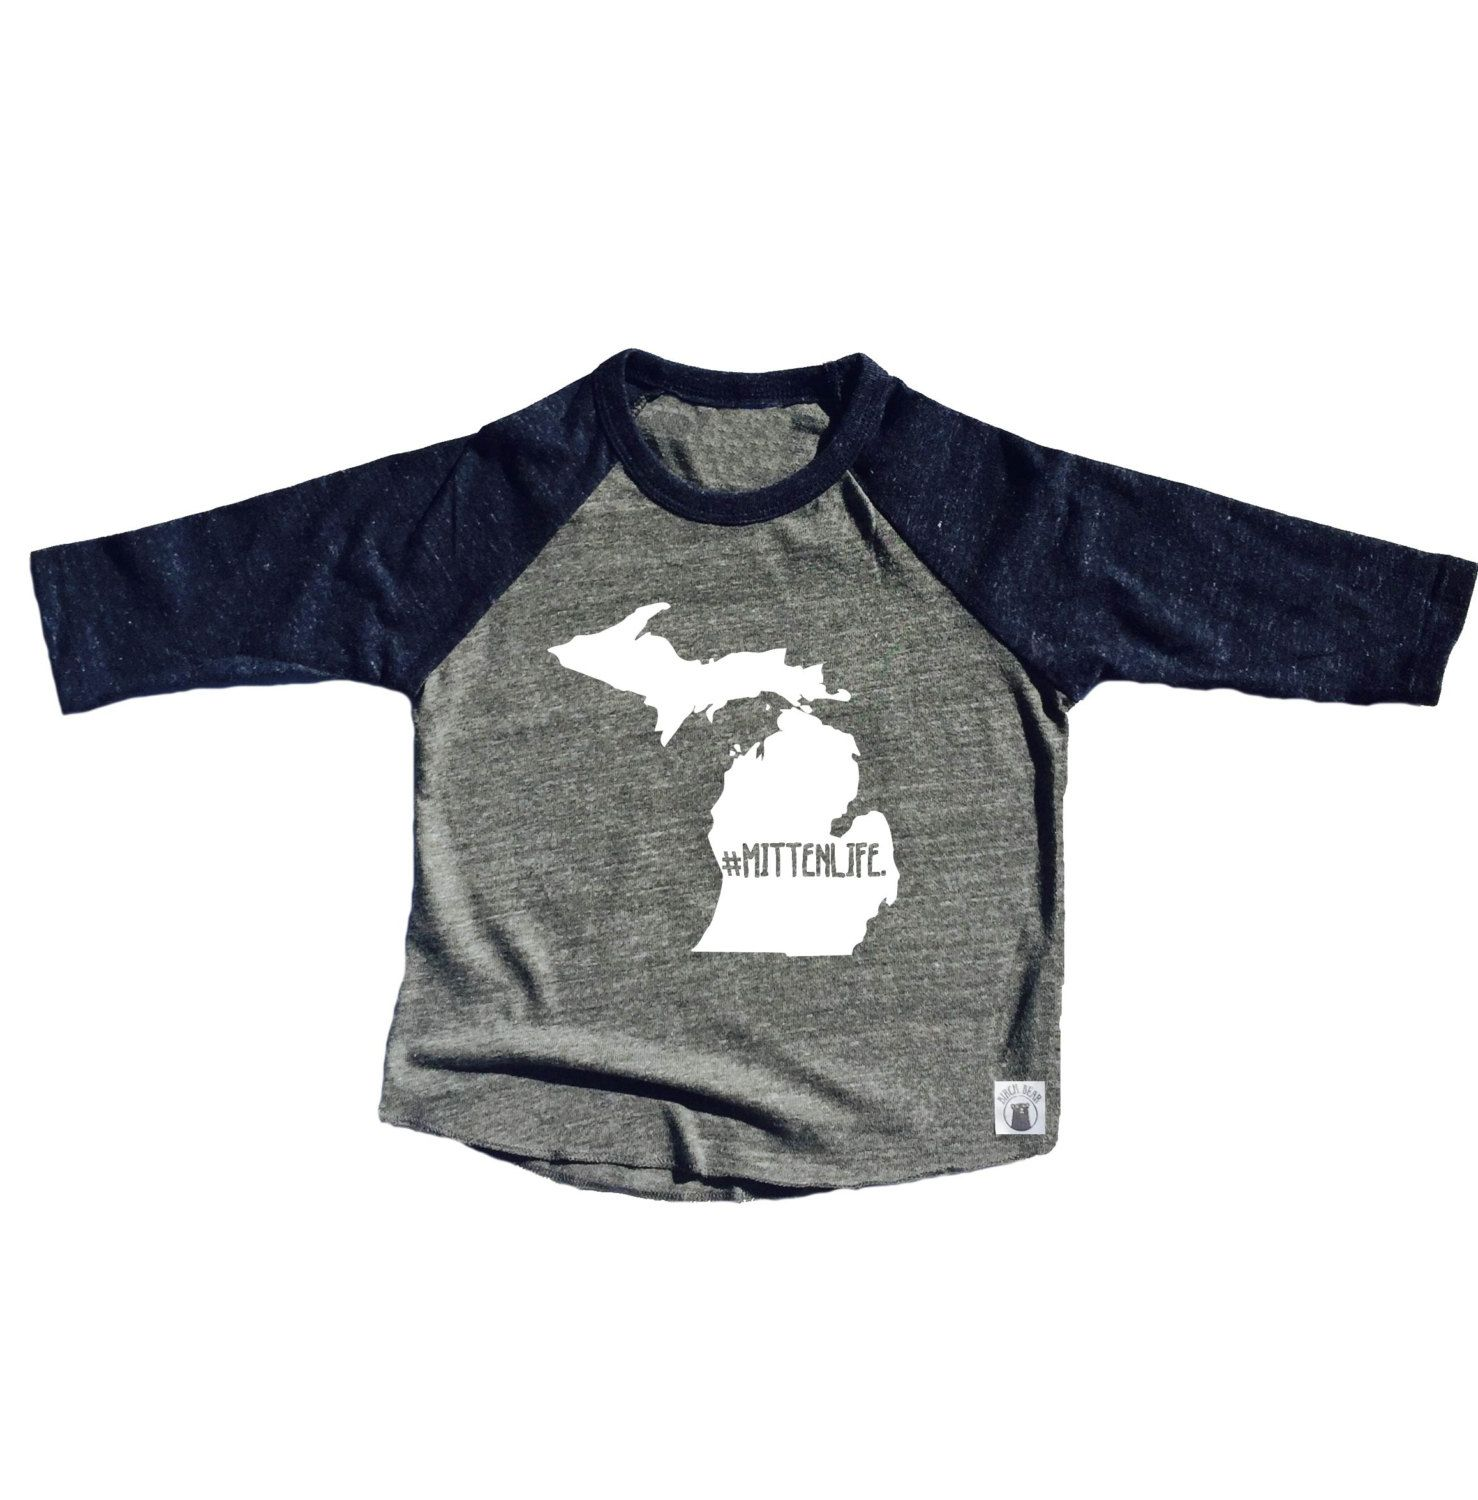 Toddler Baseball Tee Triblend Michigan Mitten Life Michigan Shirt